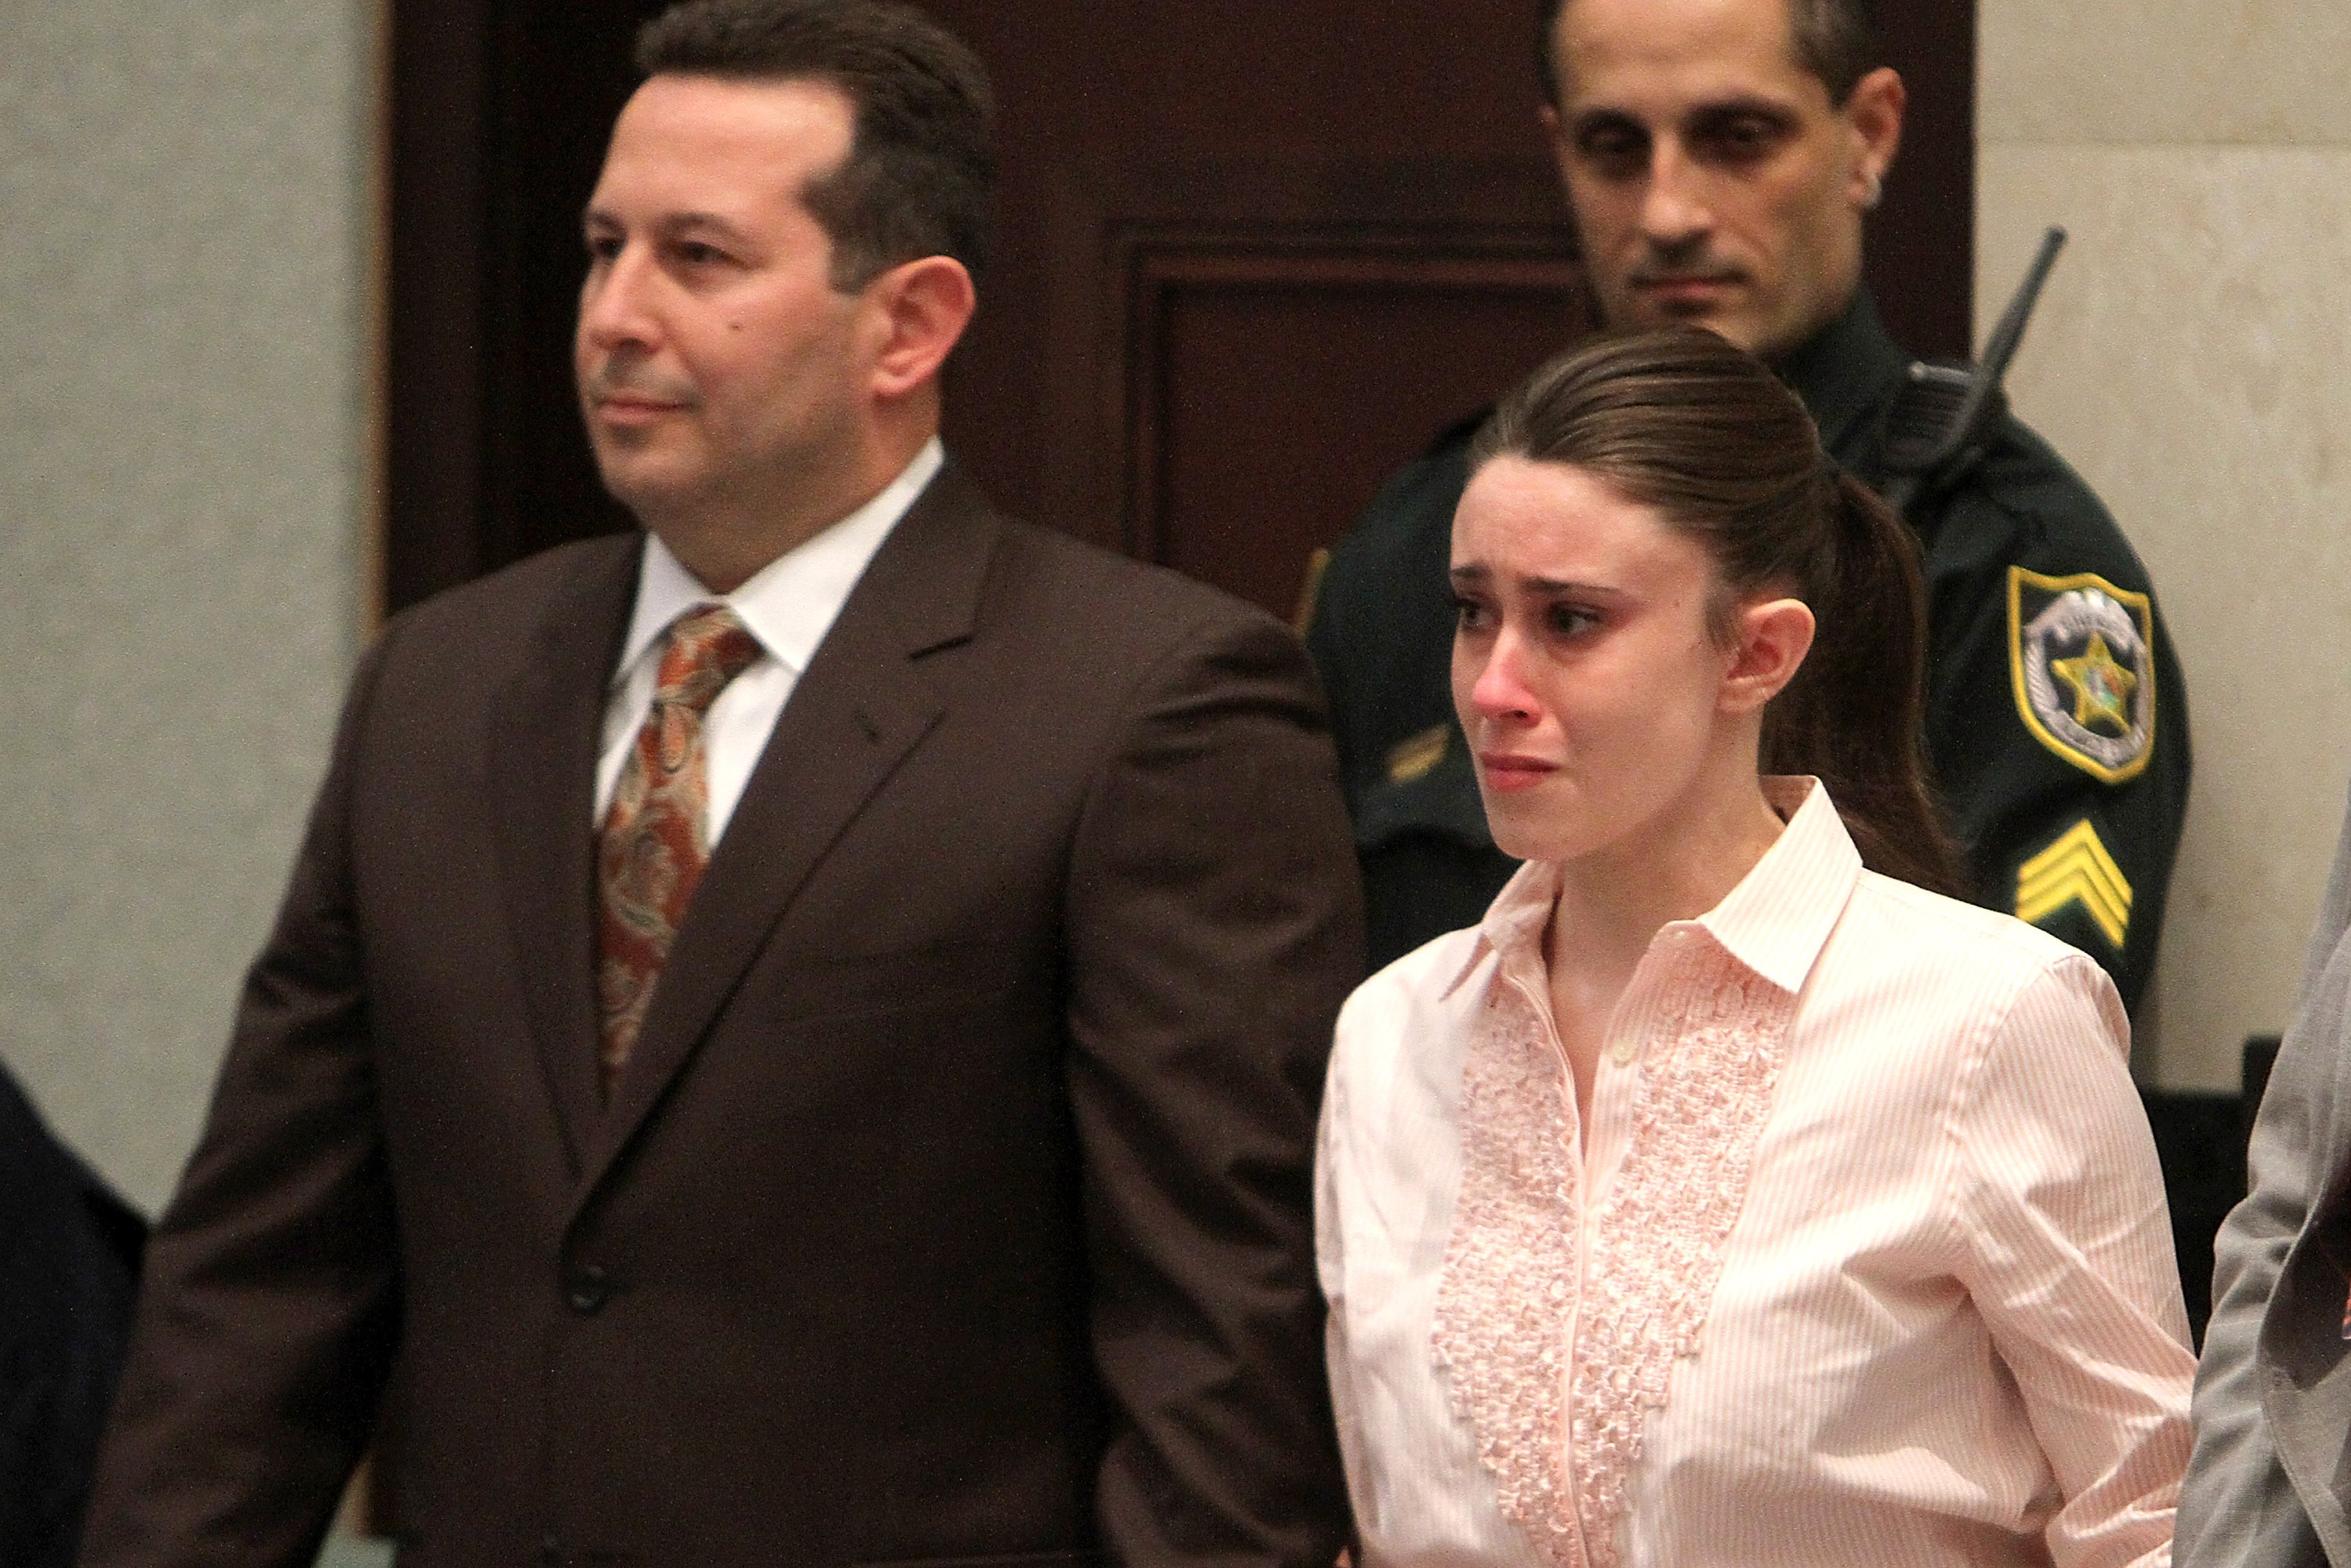 Casey Anthony (R) reacts to being found not guilty on murder charges at the Orange County Courthouse on July 5, 2011, in Orlando, Florida. At left is her attorney Jose Baez. Casey Anthony had been accused of murdering her two-year-old daughter Caylee in 2008. (Getty Images)